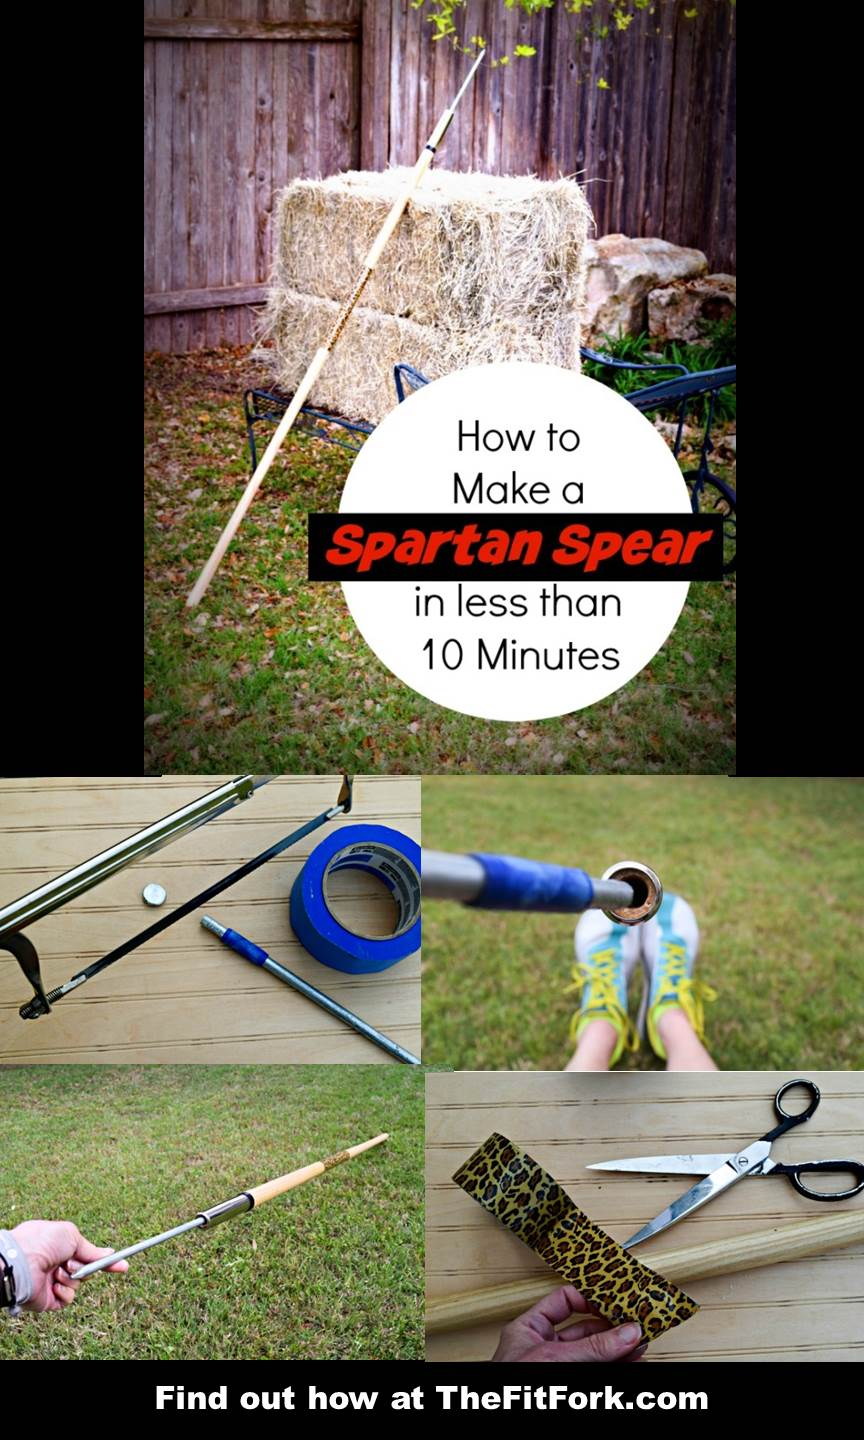 How to Make a Spartan Spear in less than 10 Minutes and under 10 Dollars